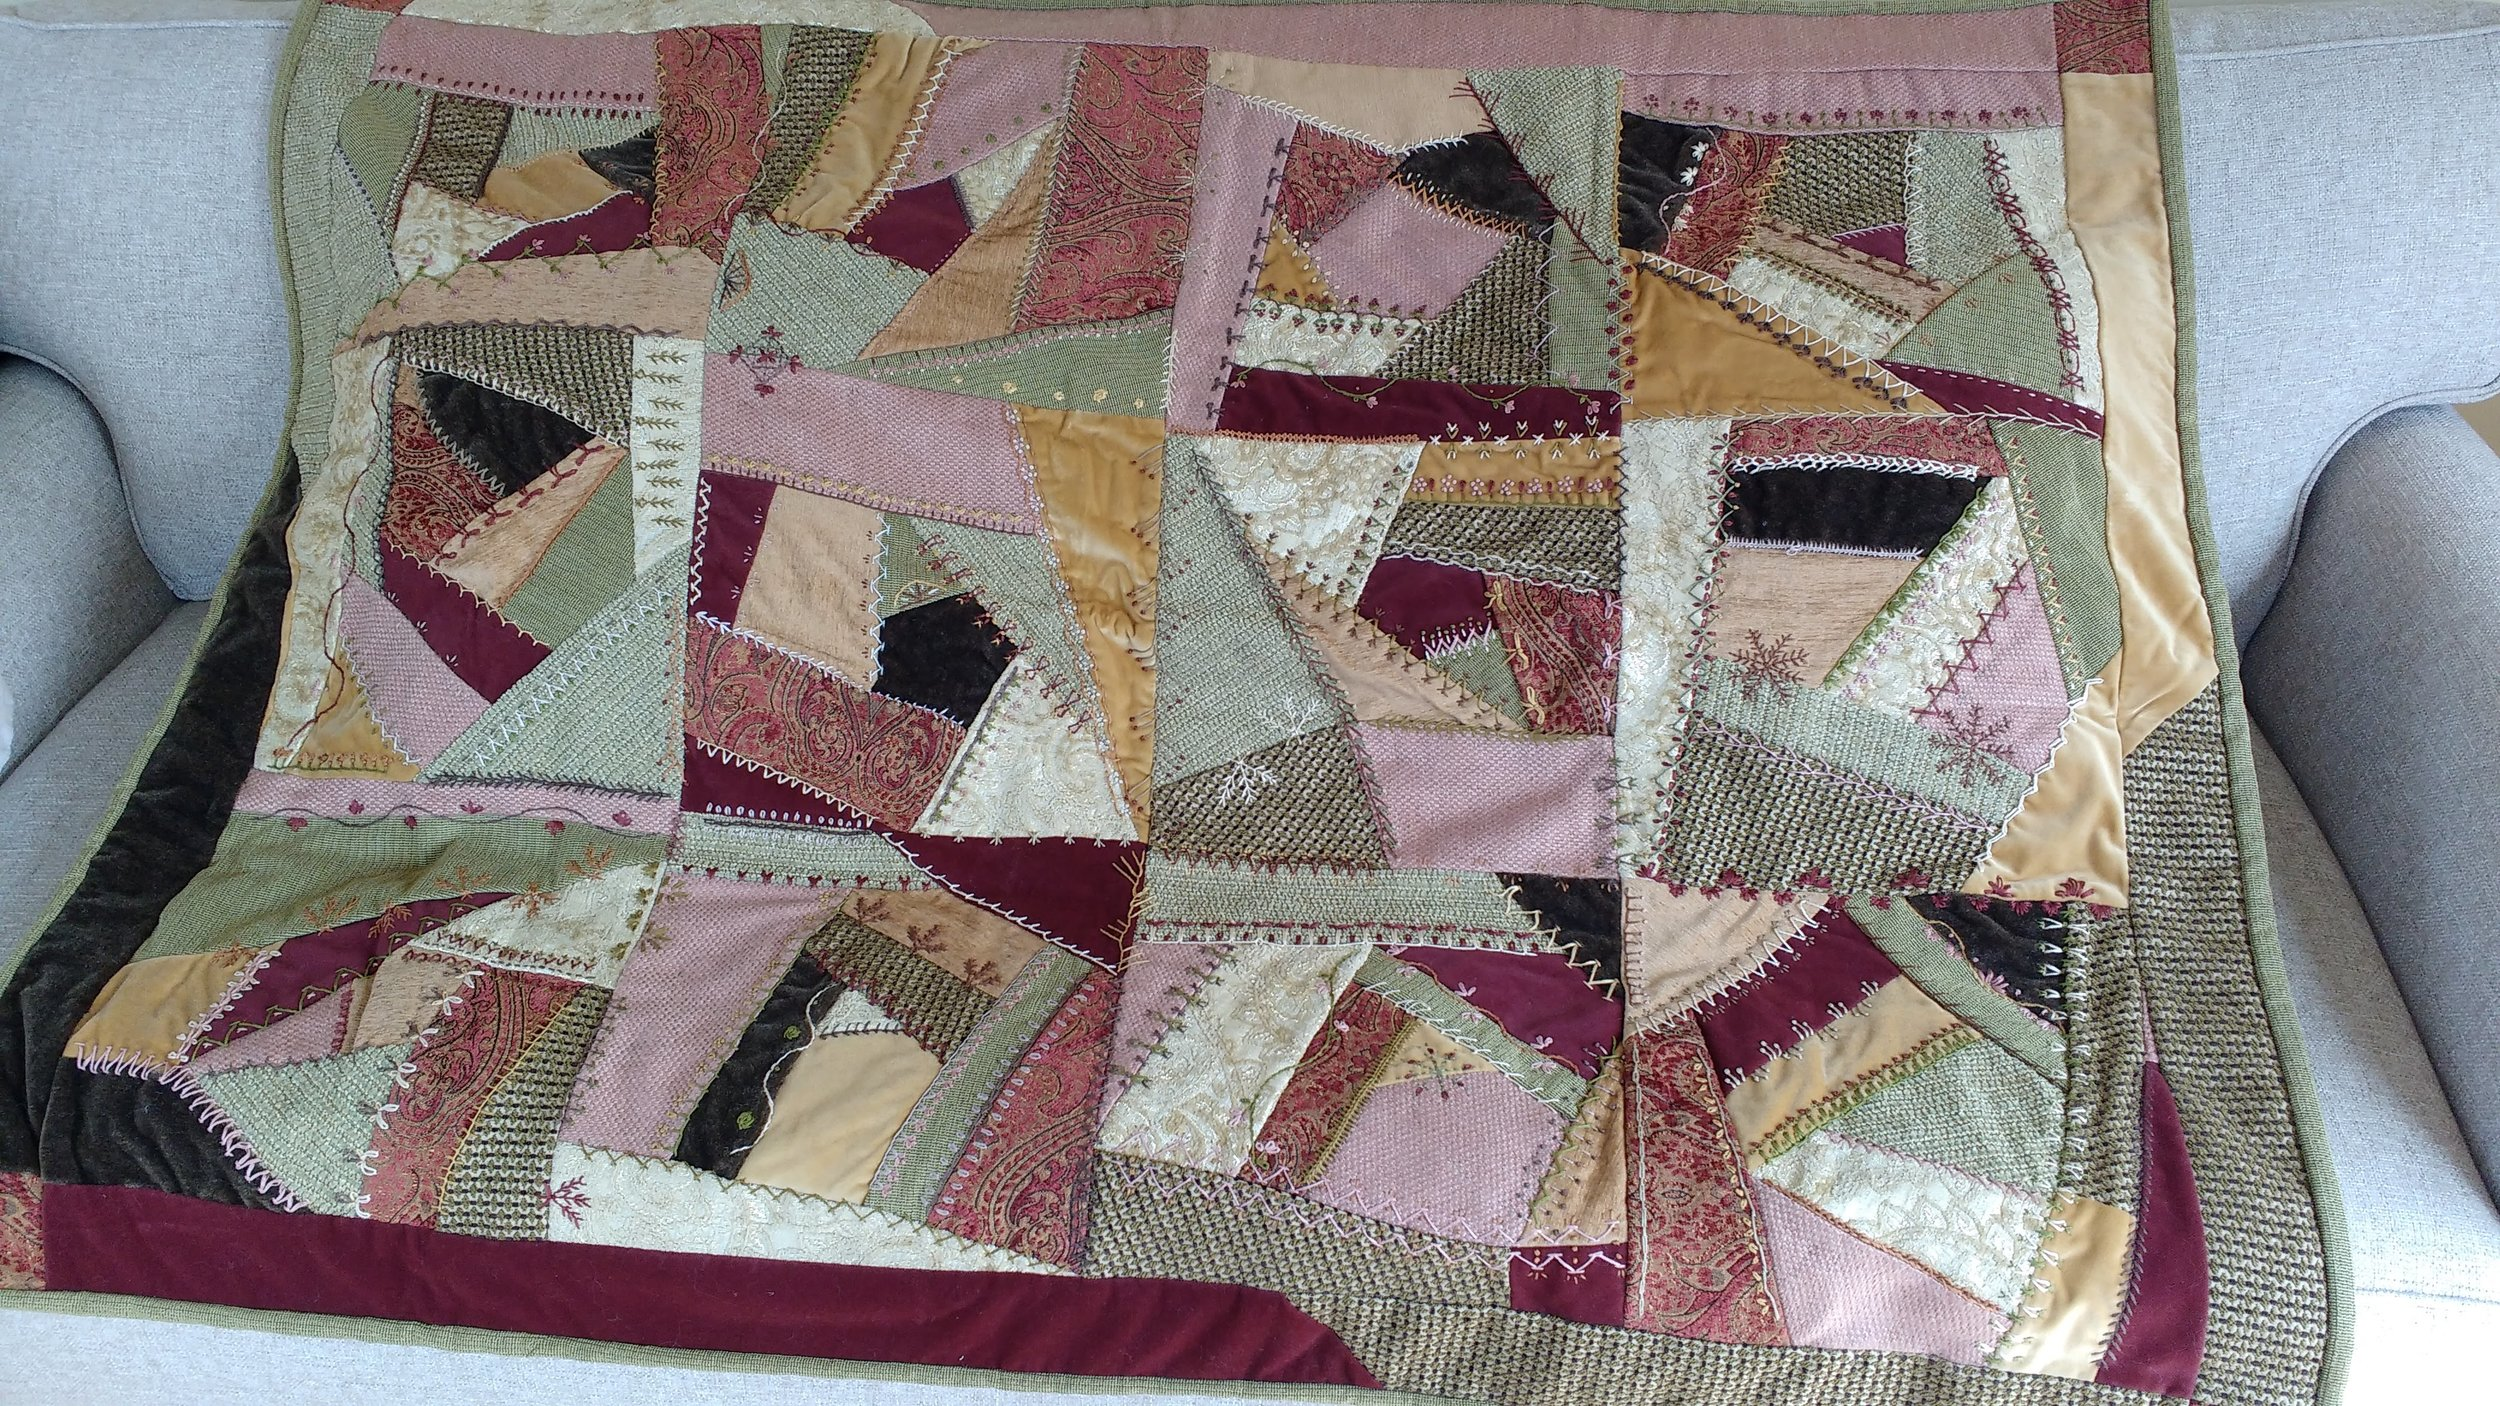 My daughter's quilt, finished almost 10 years ago, and made completely with upholstery fabric she chose. Some look pink here, though they're all browns, reds, golds and greens. Below are 2 more pics with details of my handwork.